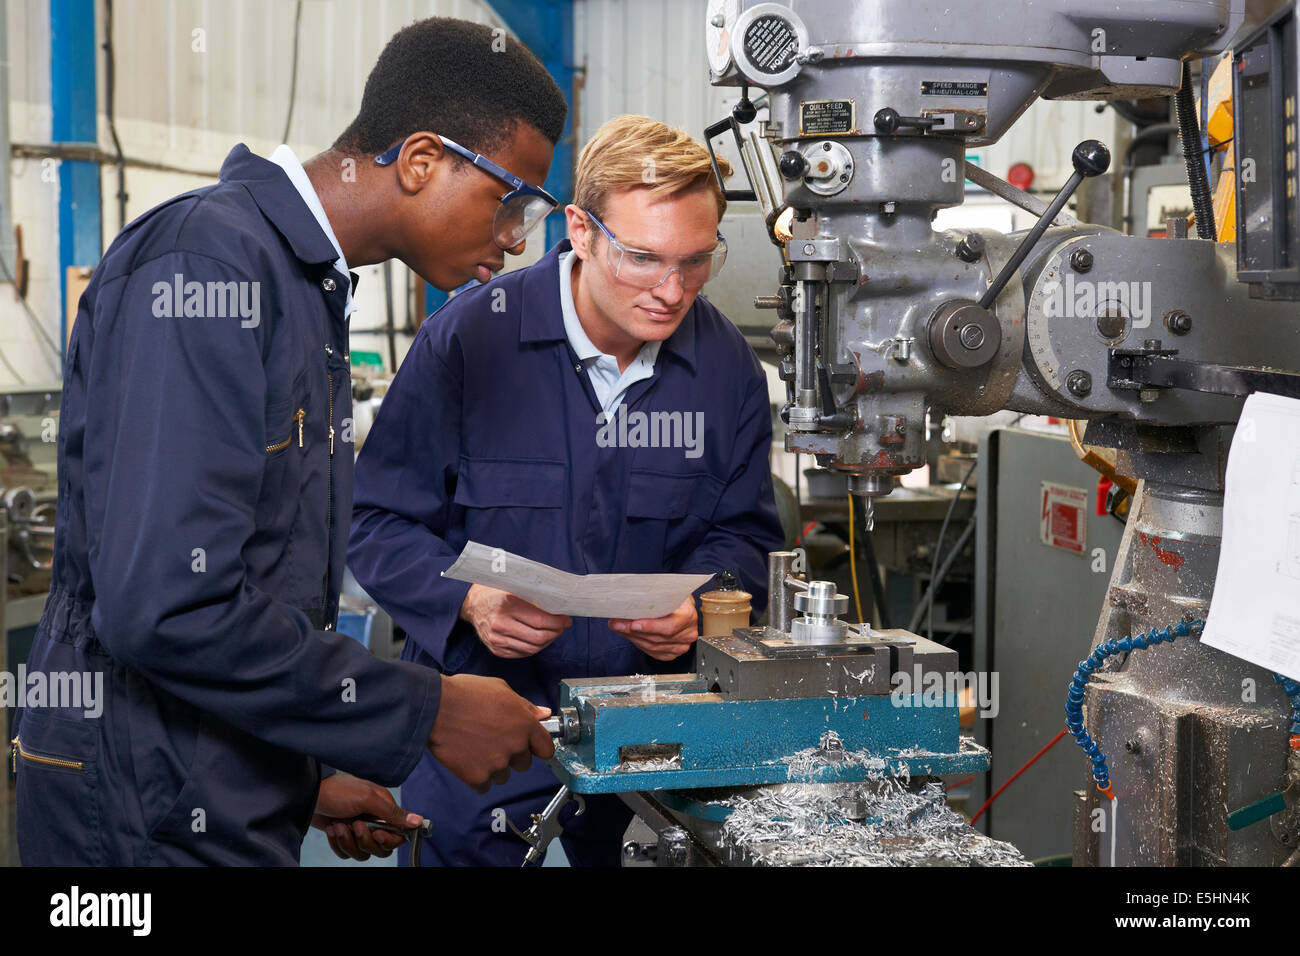 Engineer Showing Apprentice How to Use Drill In Factory - Stock Image